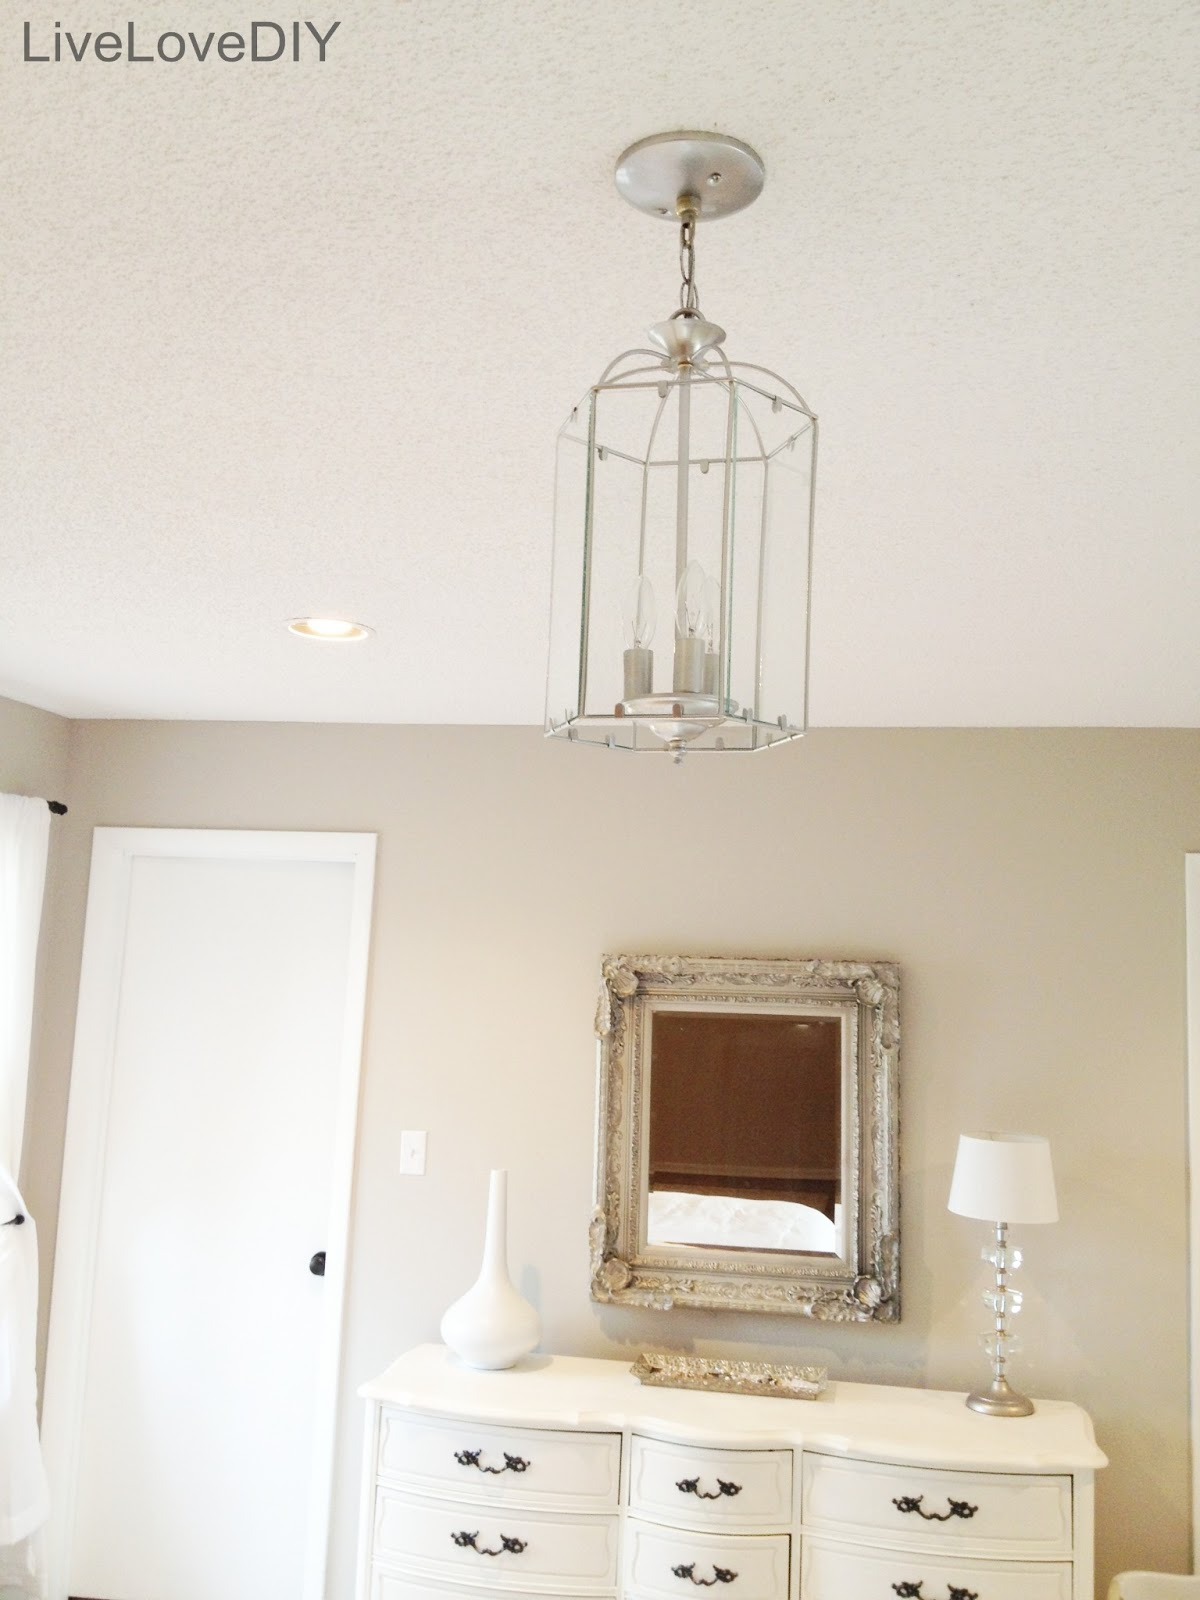 Livelovediy how to update old brass fixtures arubaitofo Choice Image